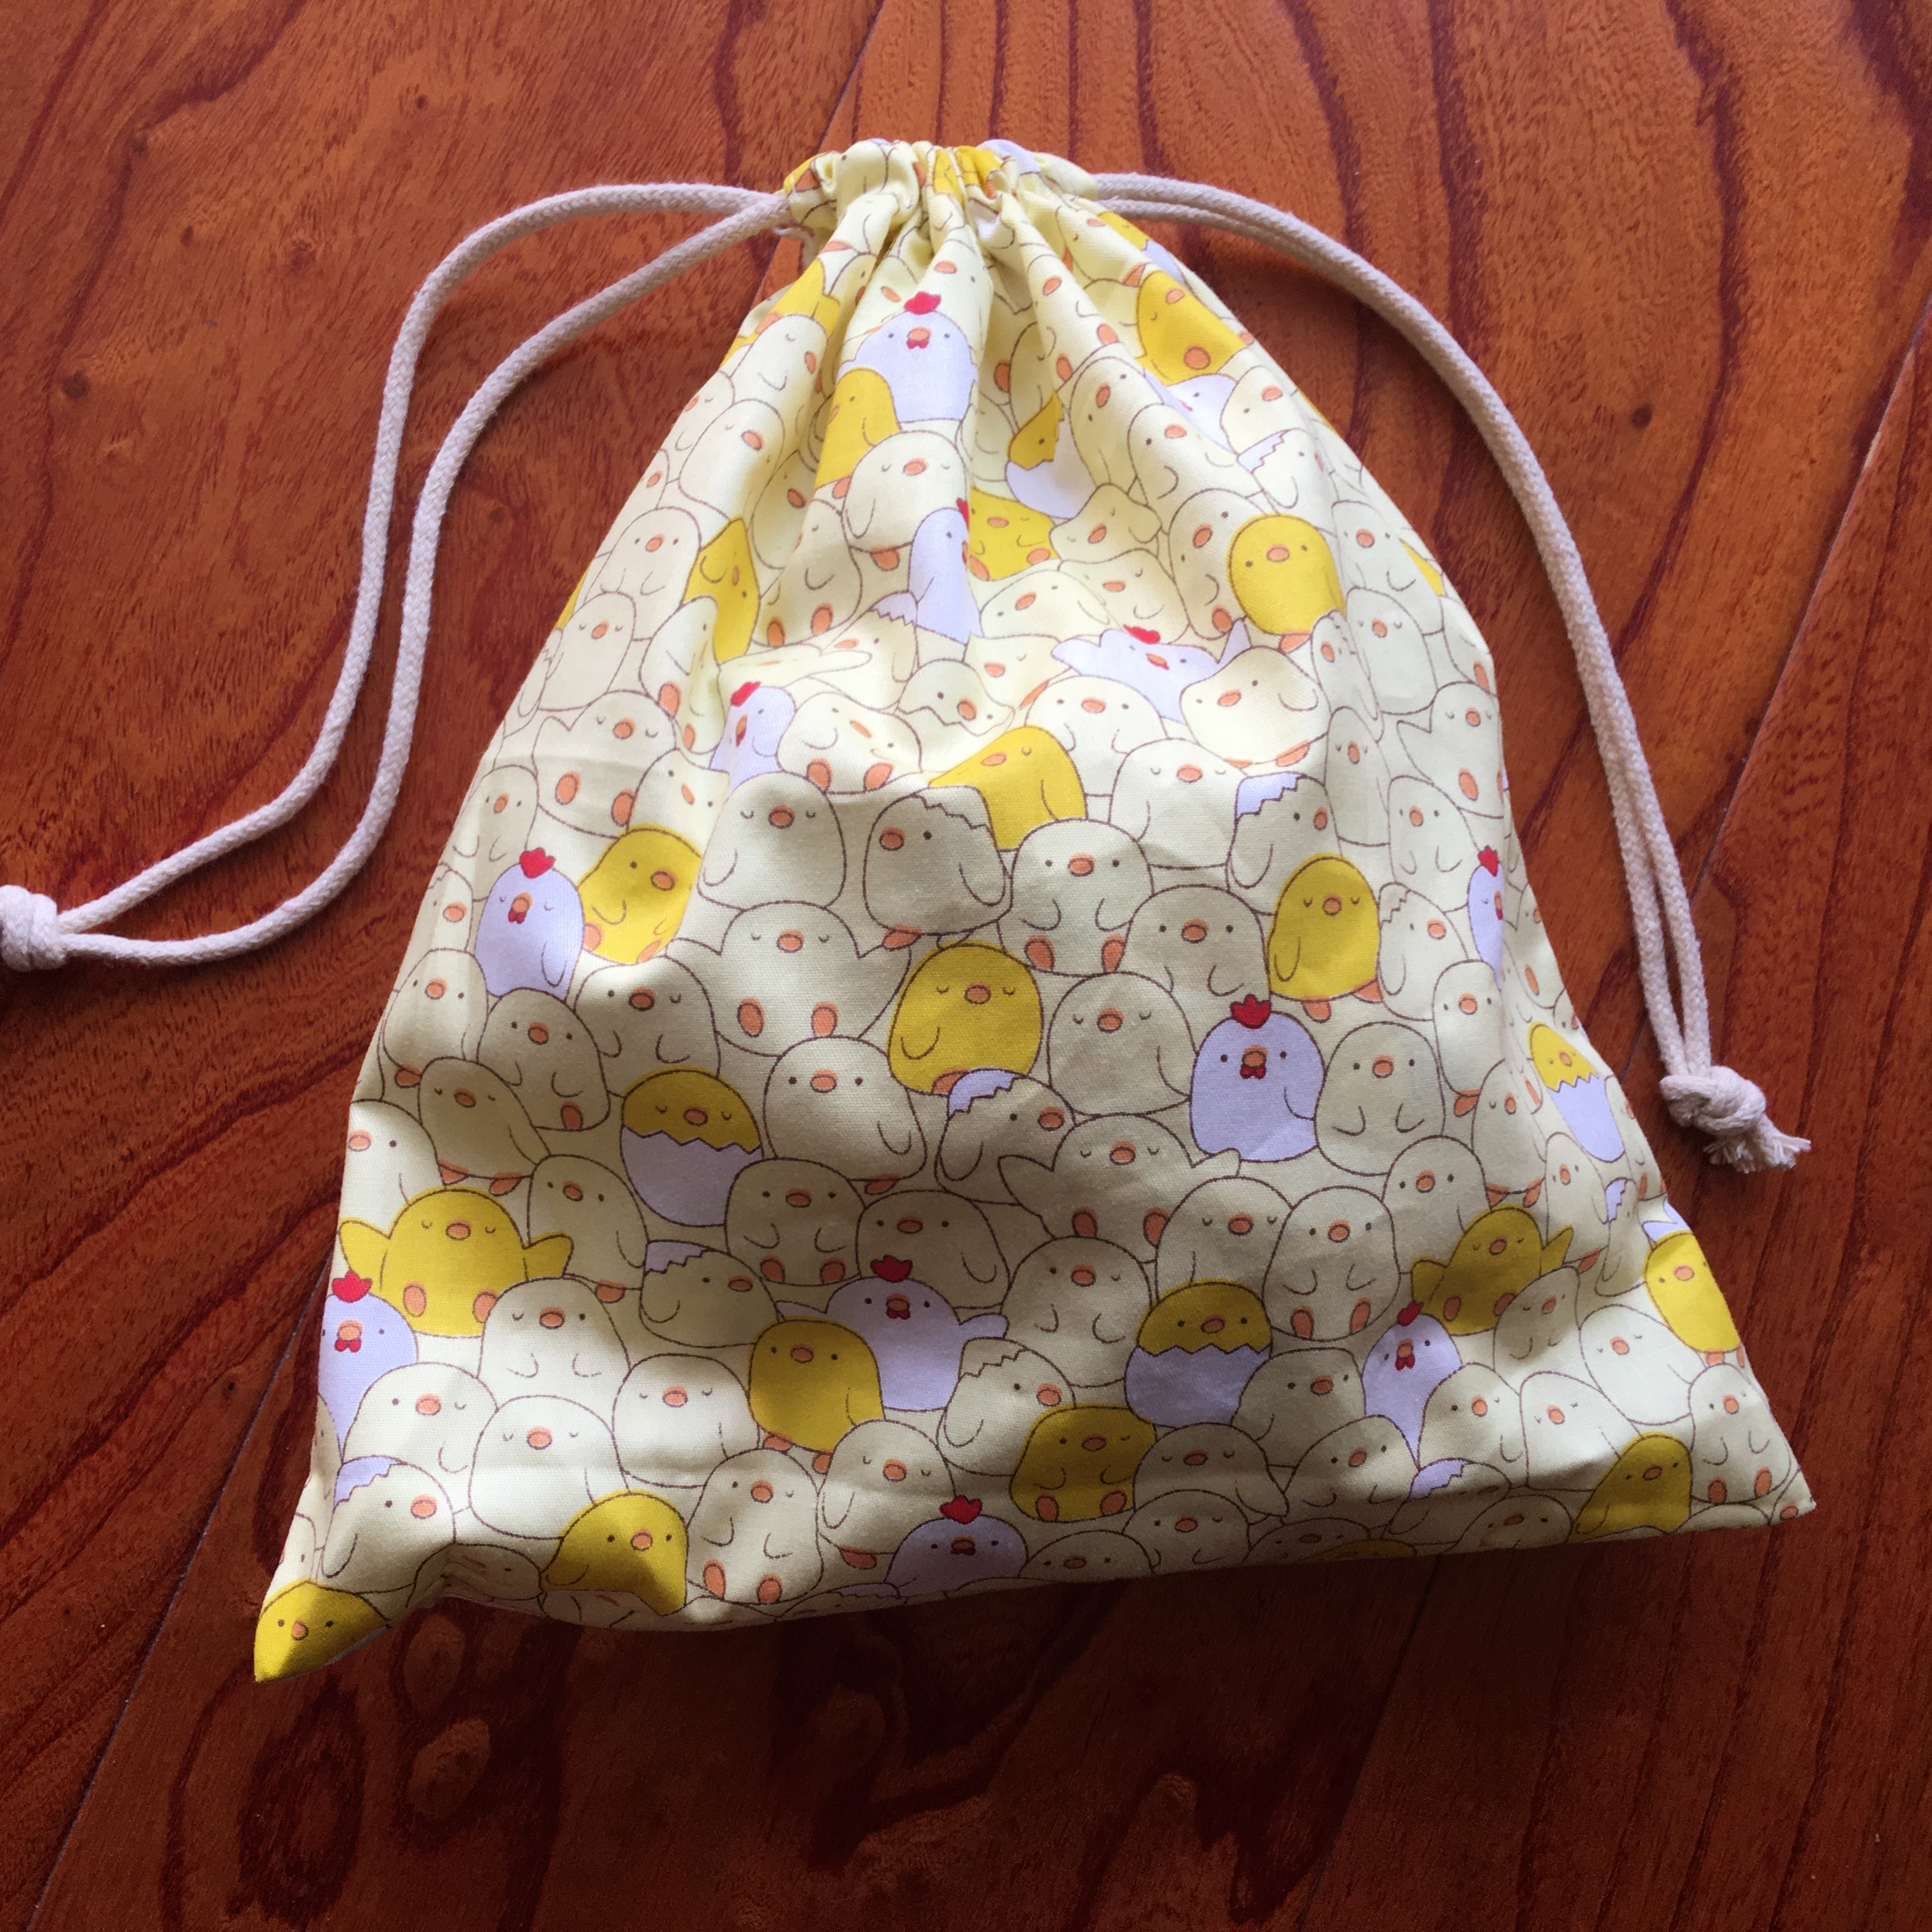 1pc Cotton Drawstring Pouch Multi-purpose Bag Cartoon Yellow White Duck Party Gift Bag YILE